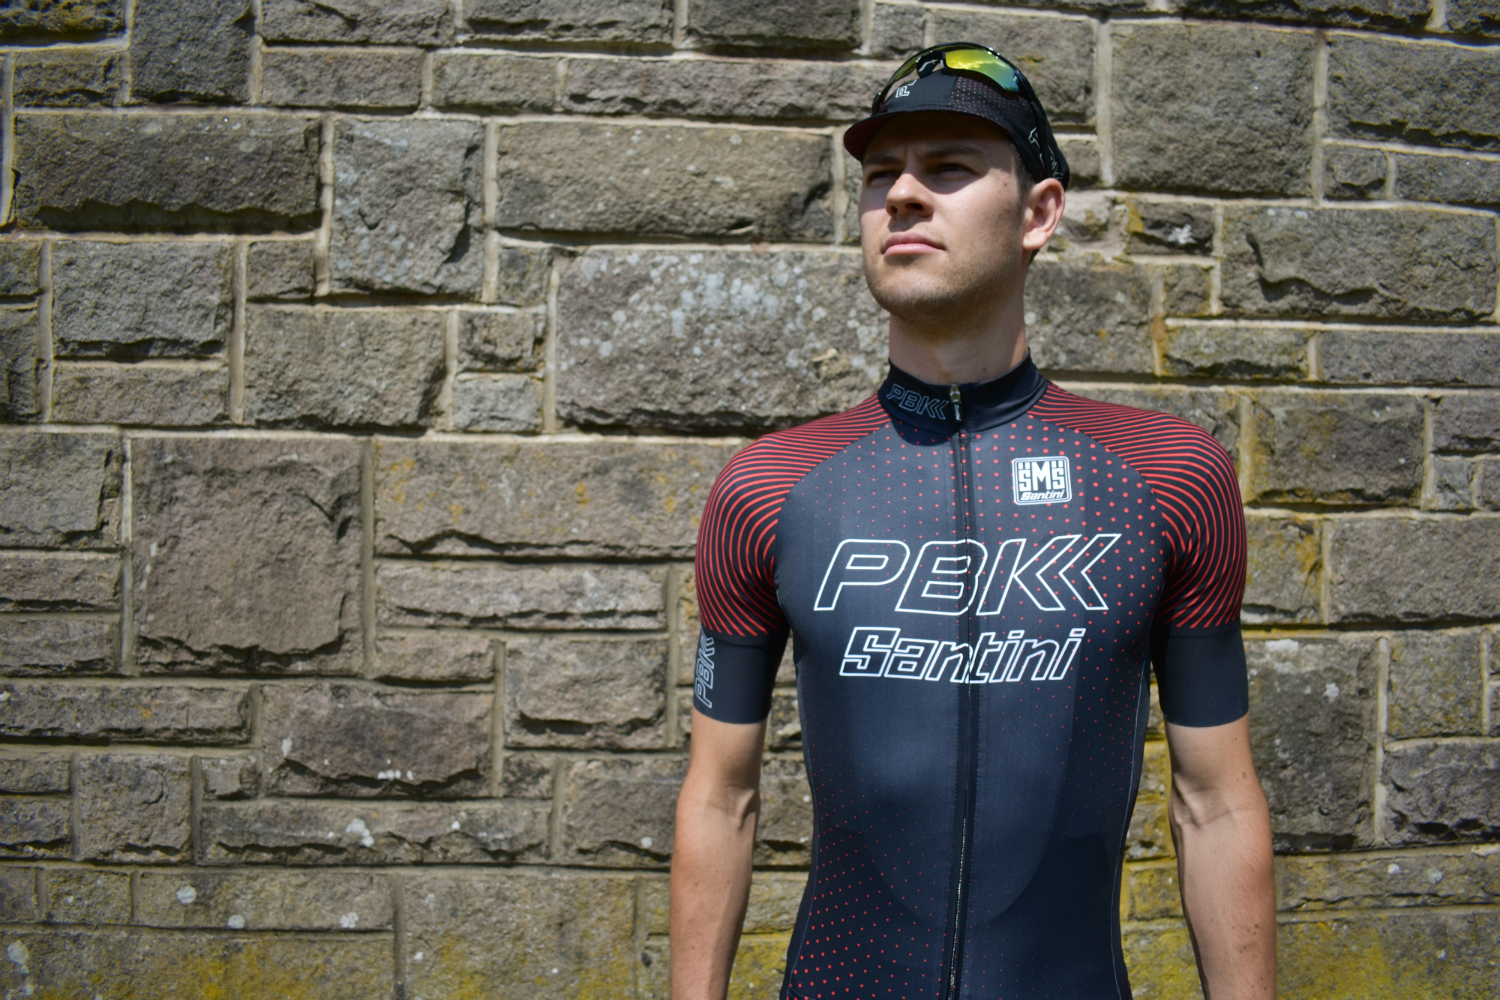 a rider in the PBK santini 19 jersey